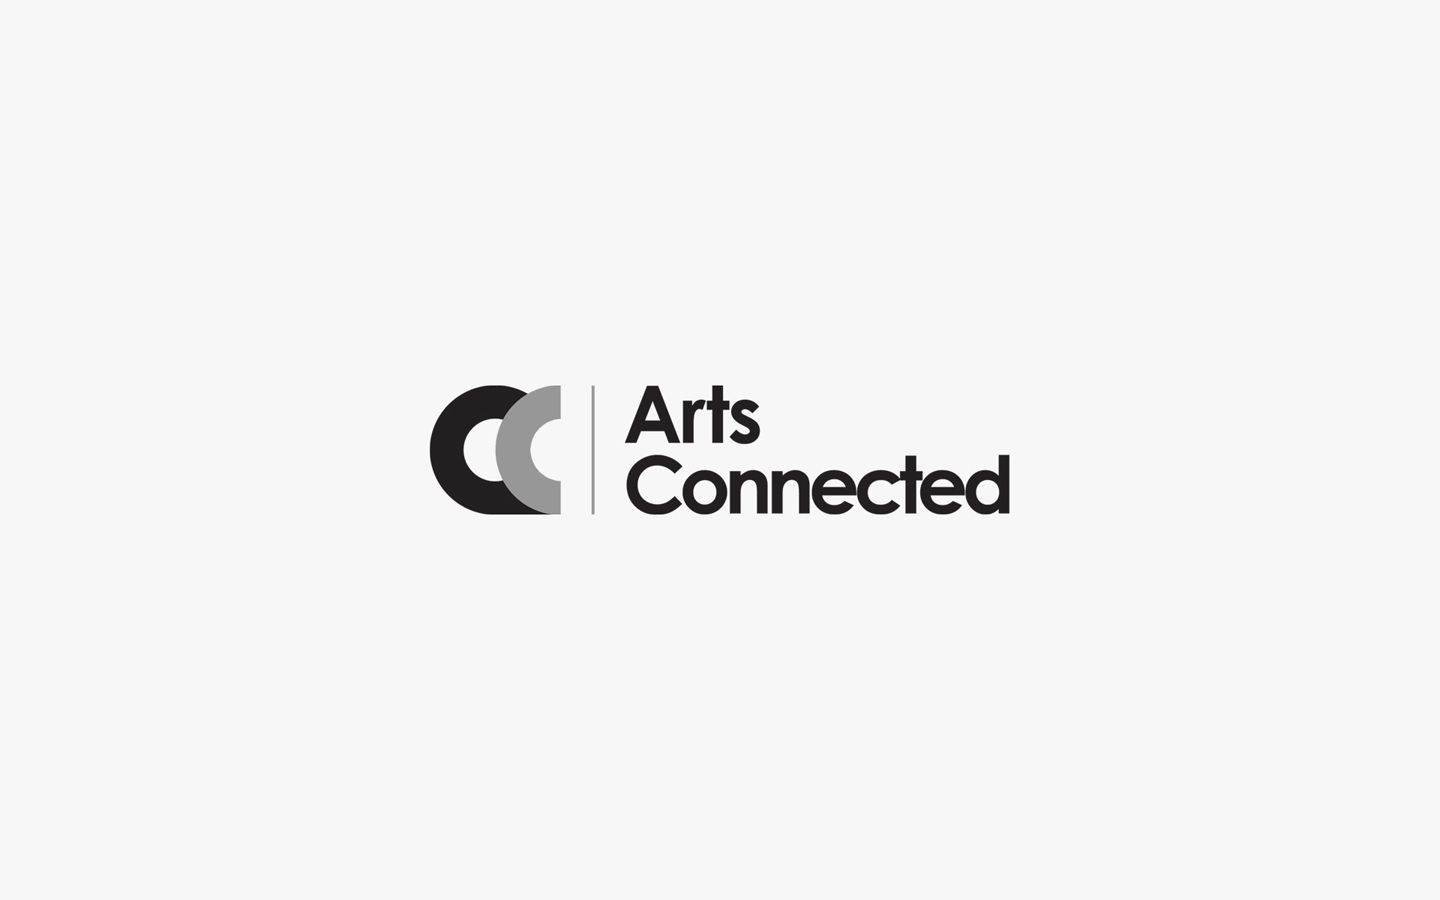 Arts Connected Logo Design